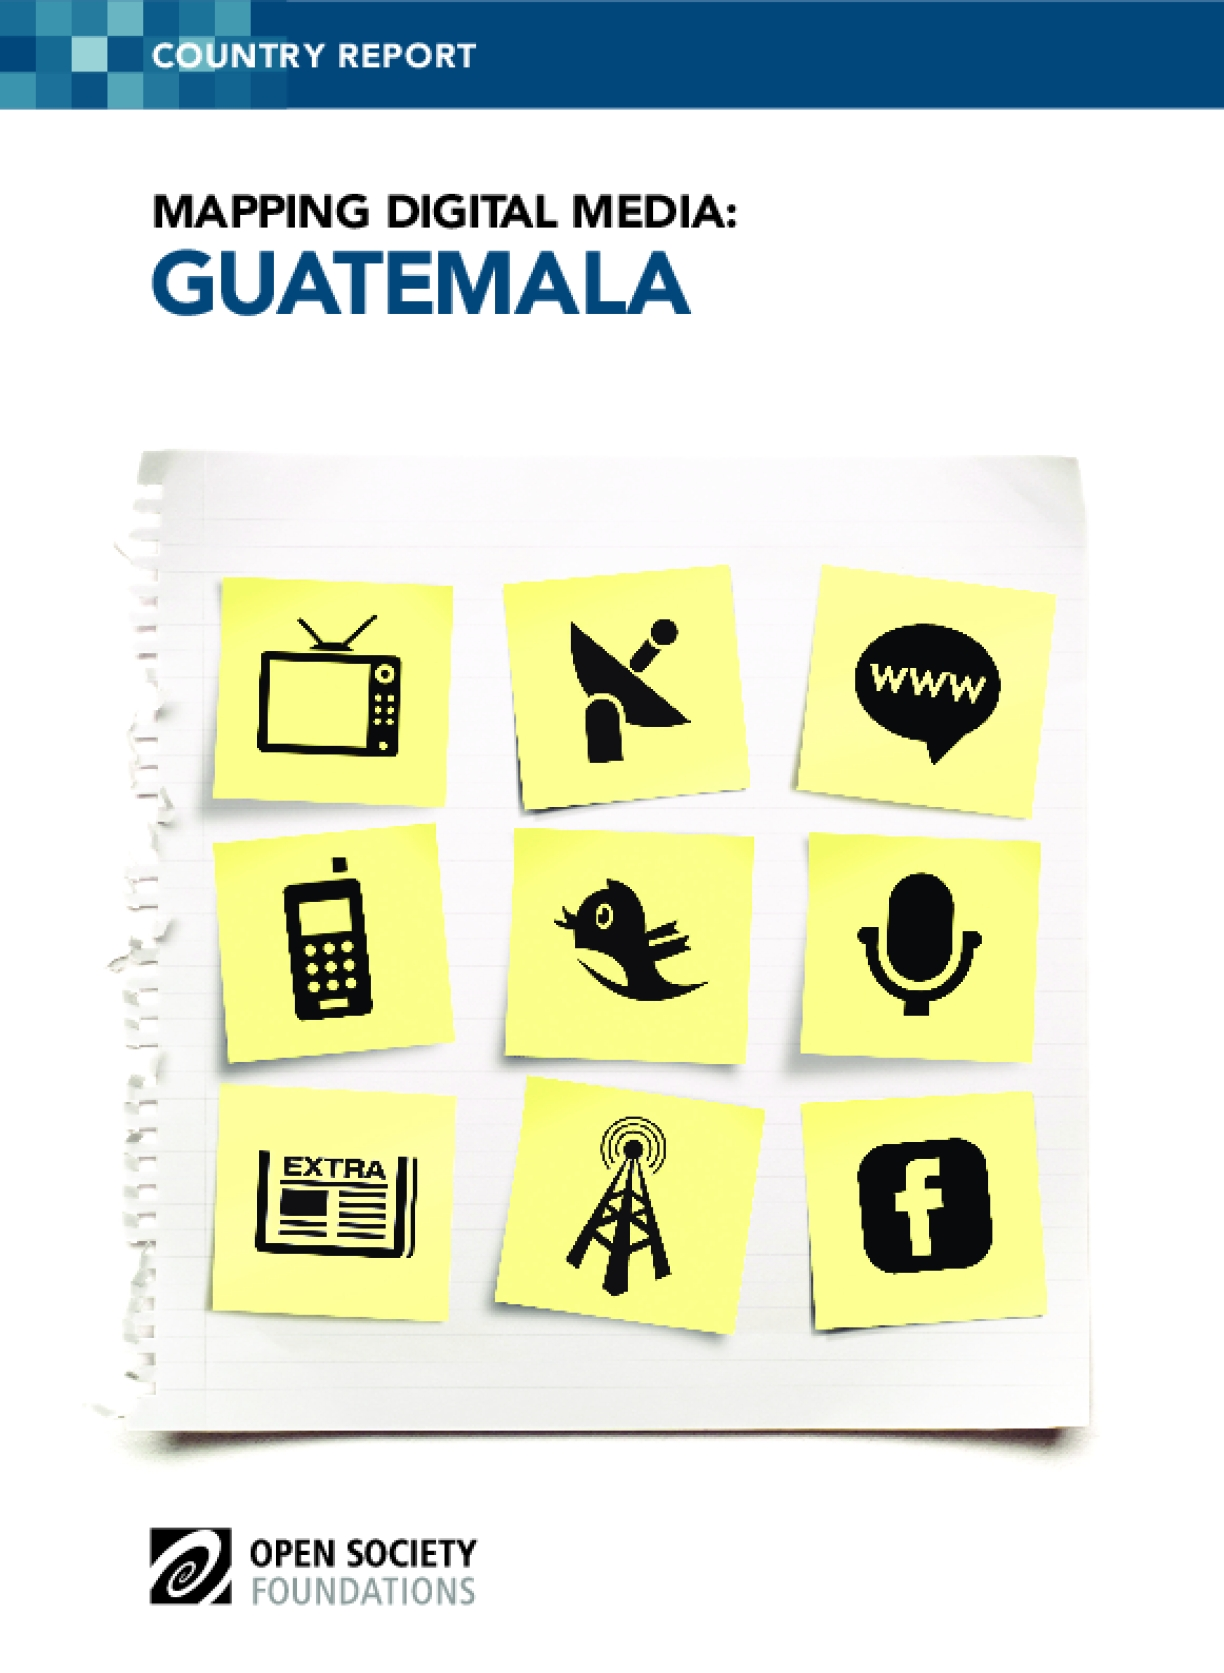 Mapping Digital Media: Guatemala